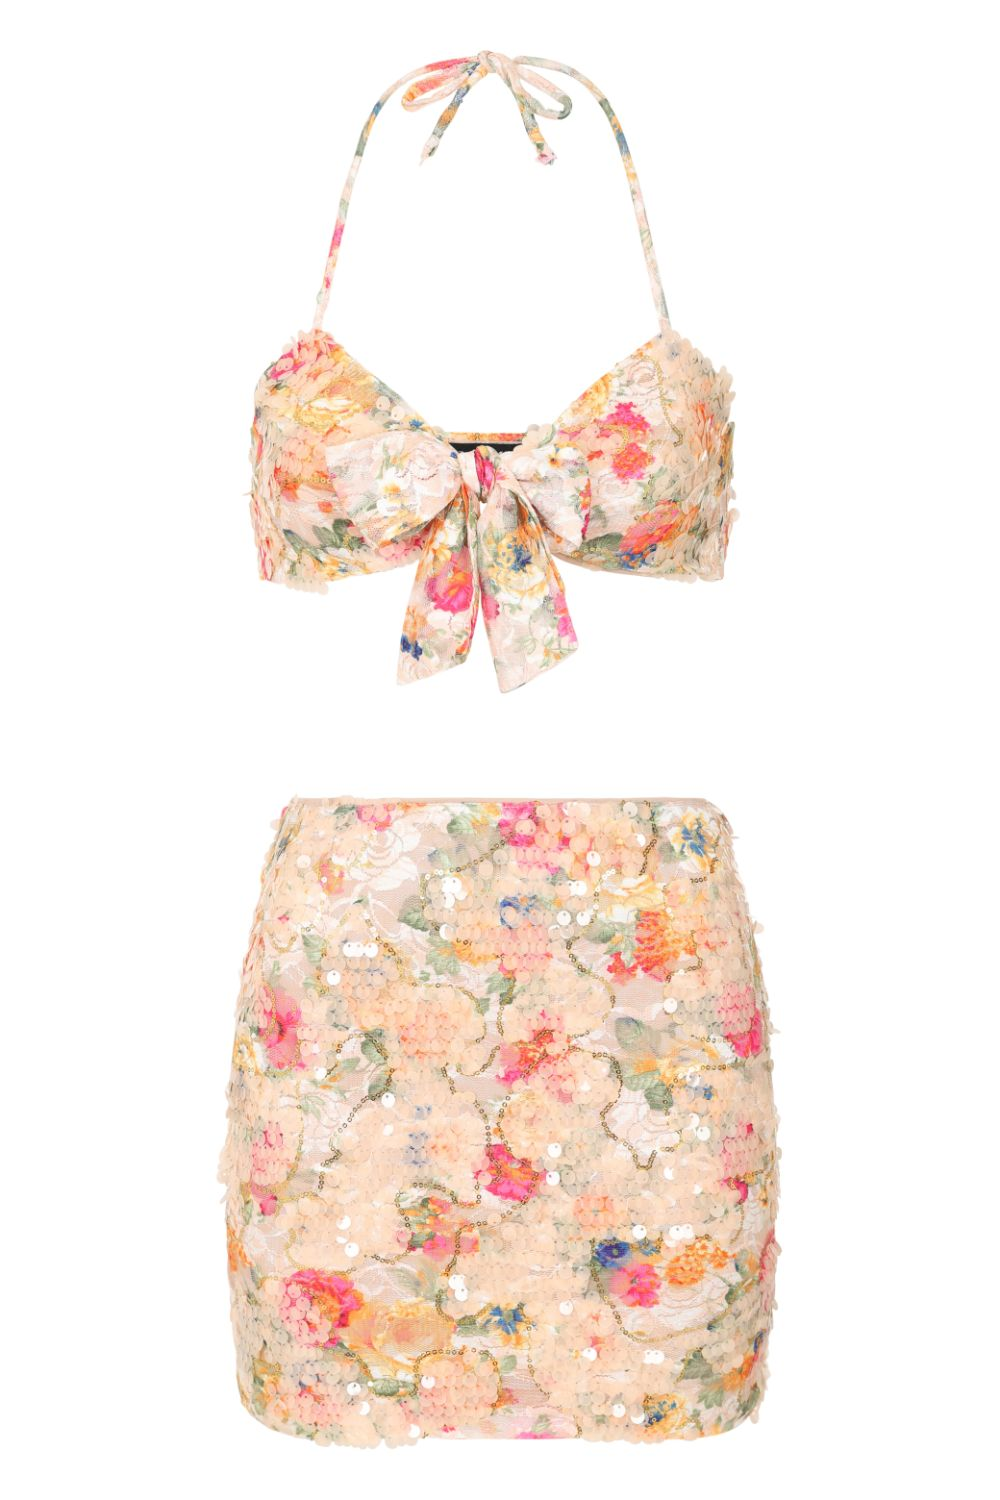 All Ties On You Floral Lace & Nude Sequin Tie Up Two Piece Skirt Top Co Ord Set